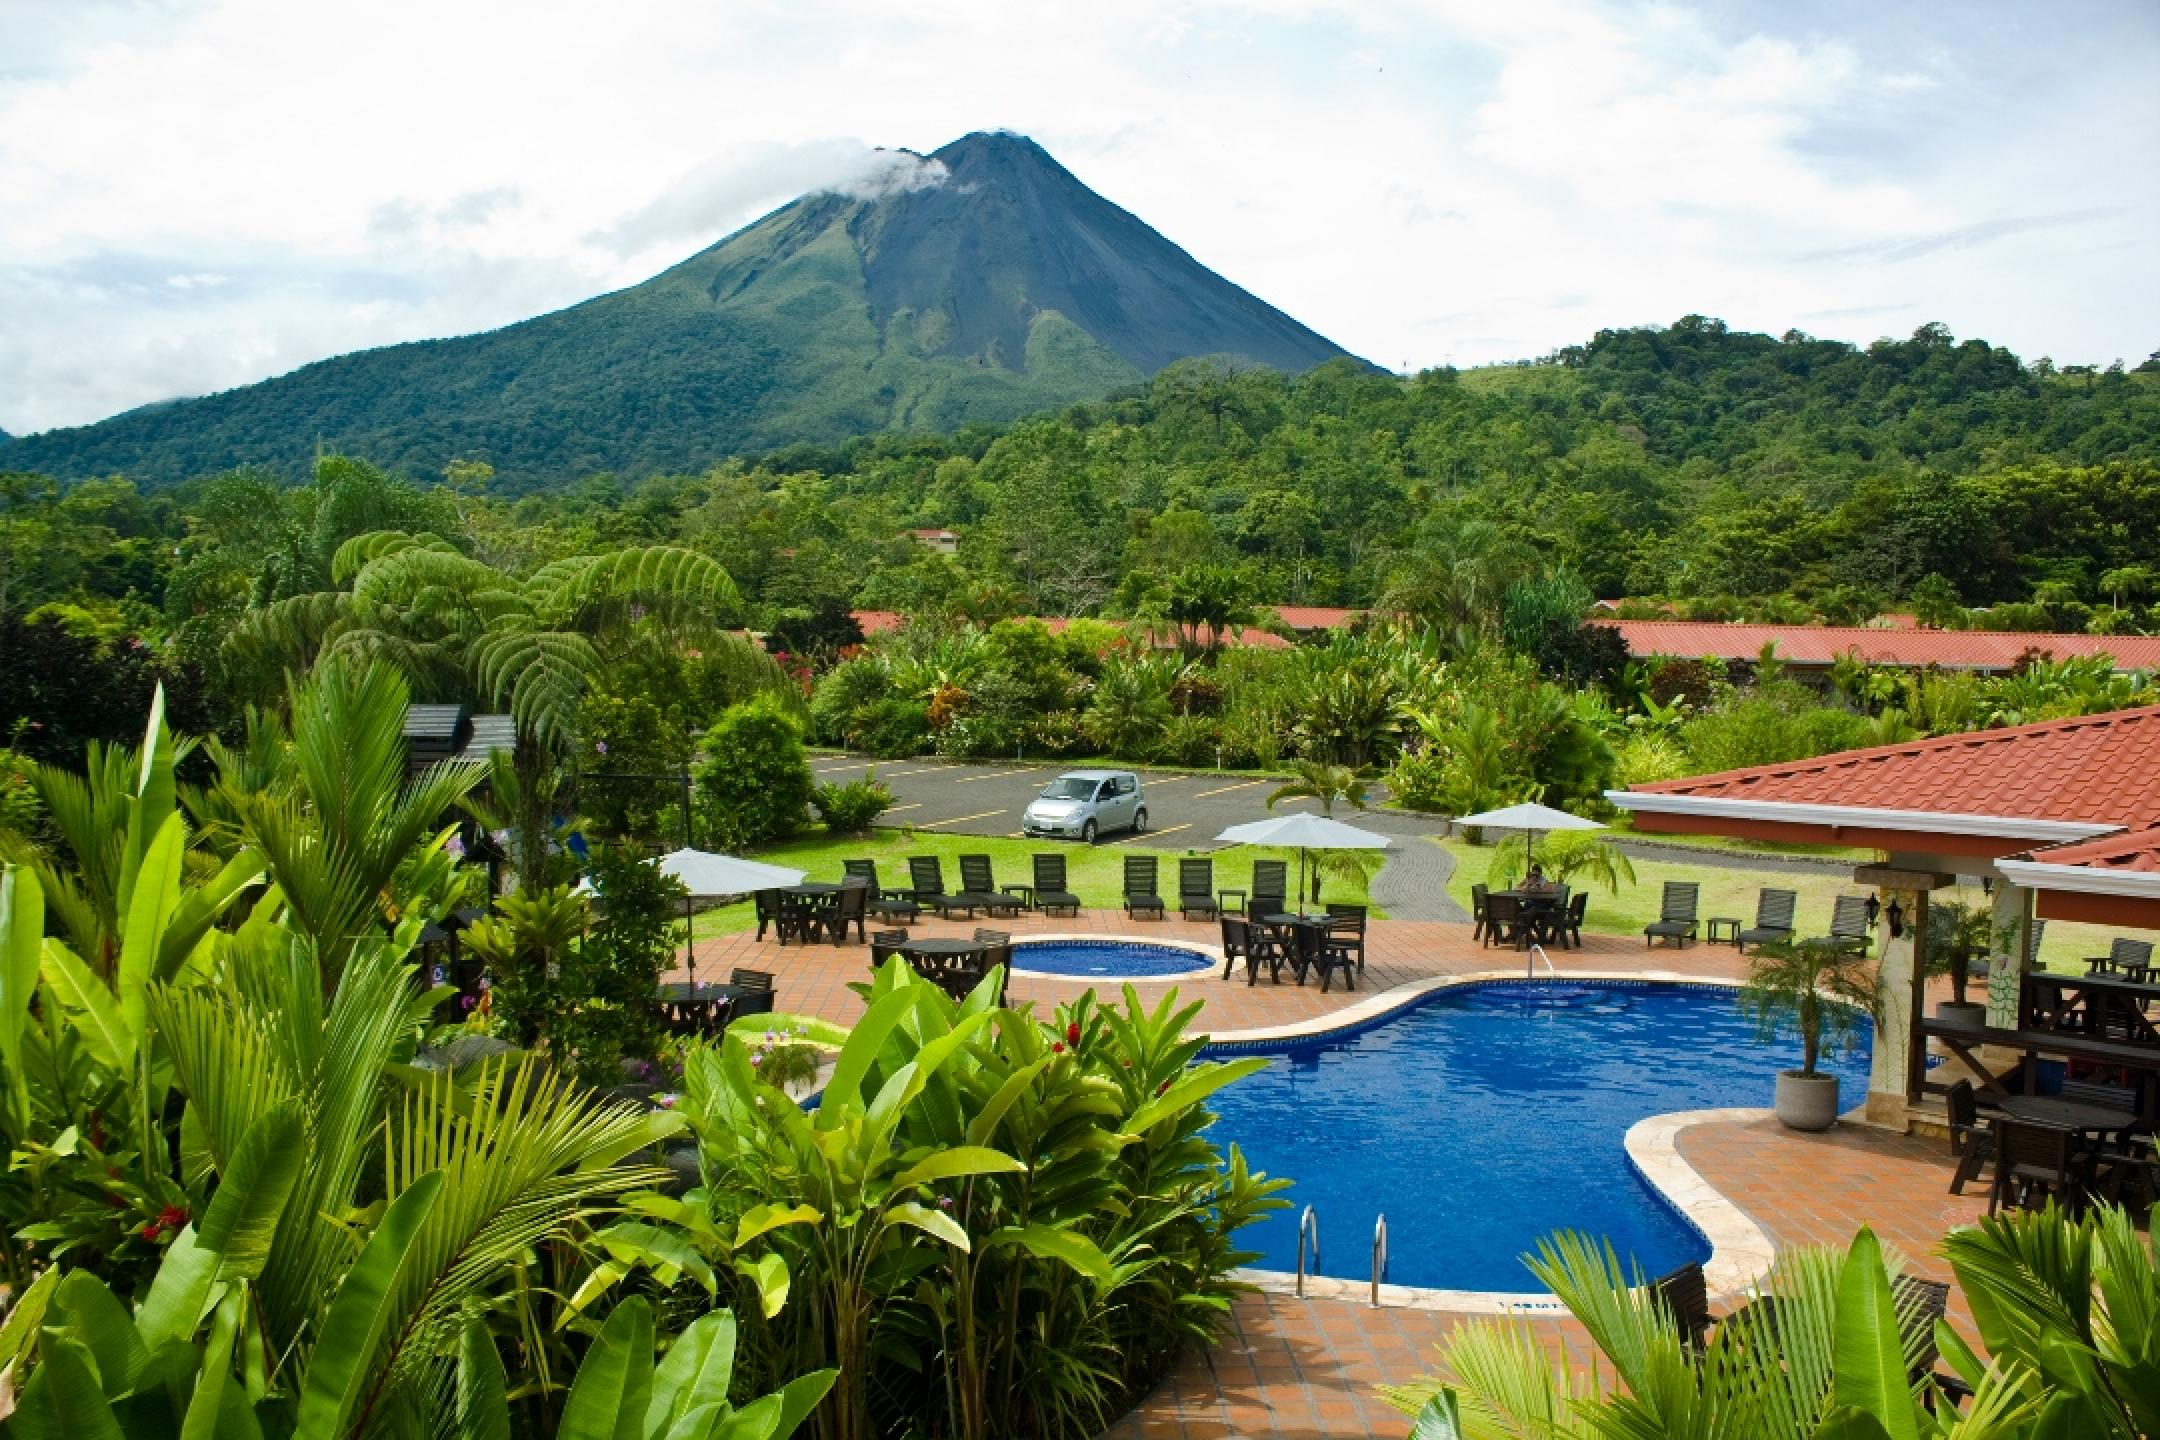 Volcano Lodge Hotel & Thermal Springs